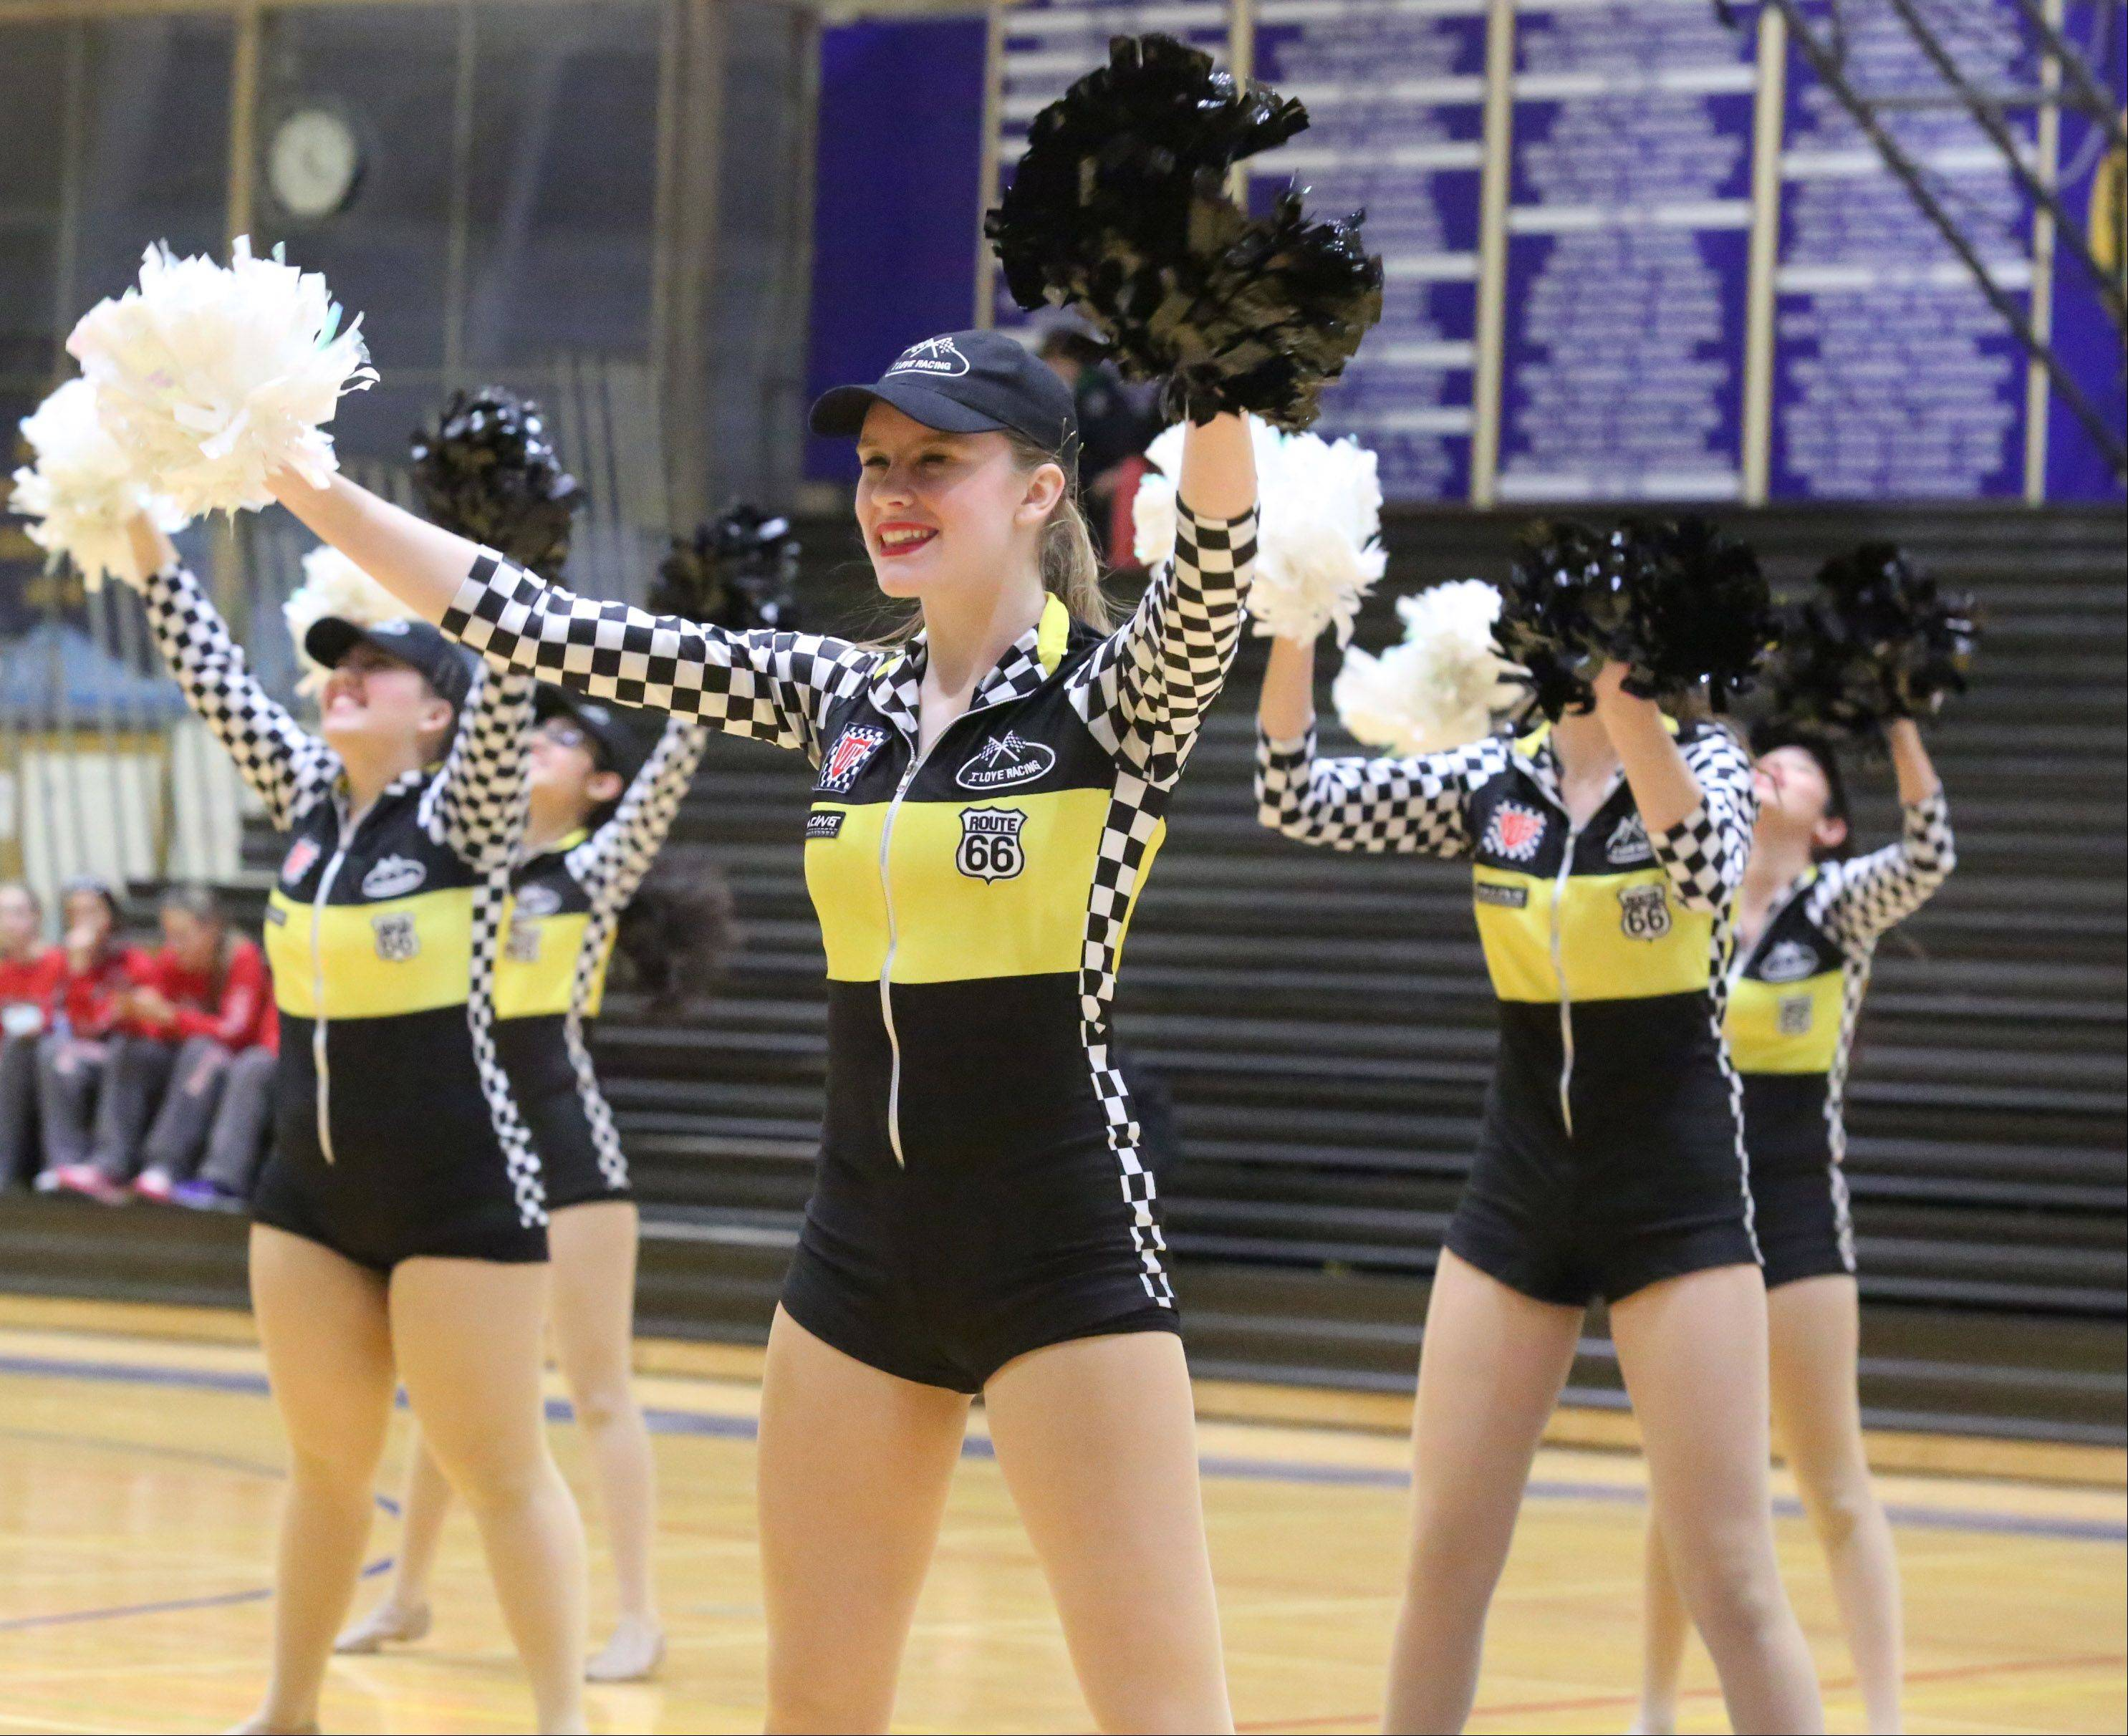 Elk Grove High School's dance team competes at the IHSA competitive dance sectional at Glenbrook South High School on Saturday in Glenview.